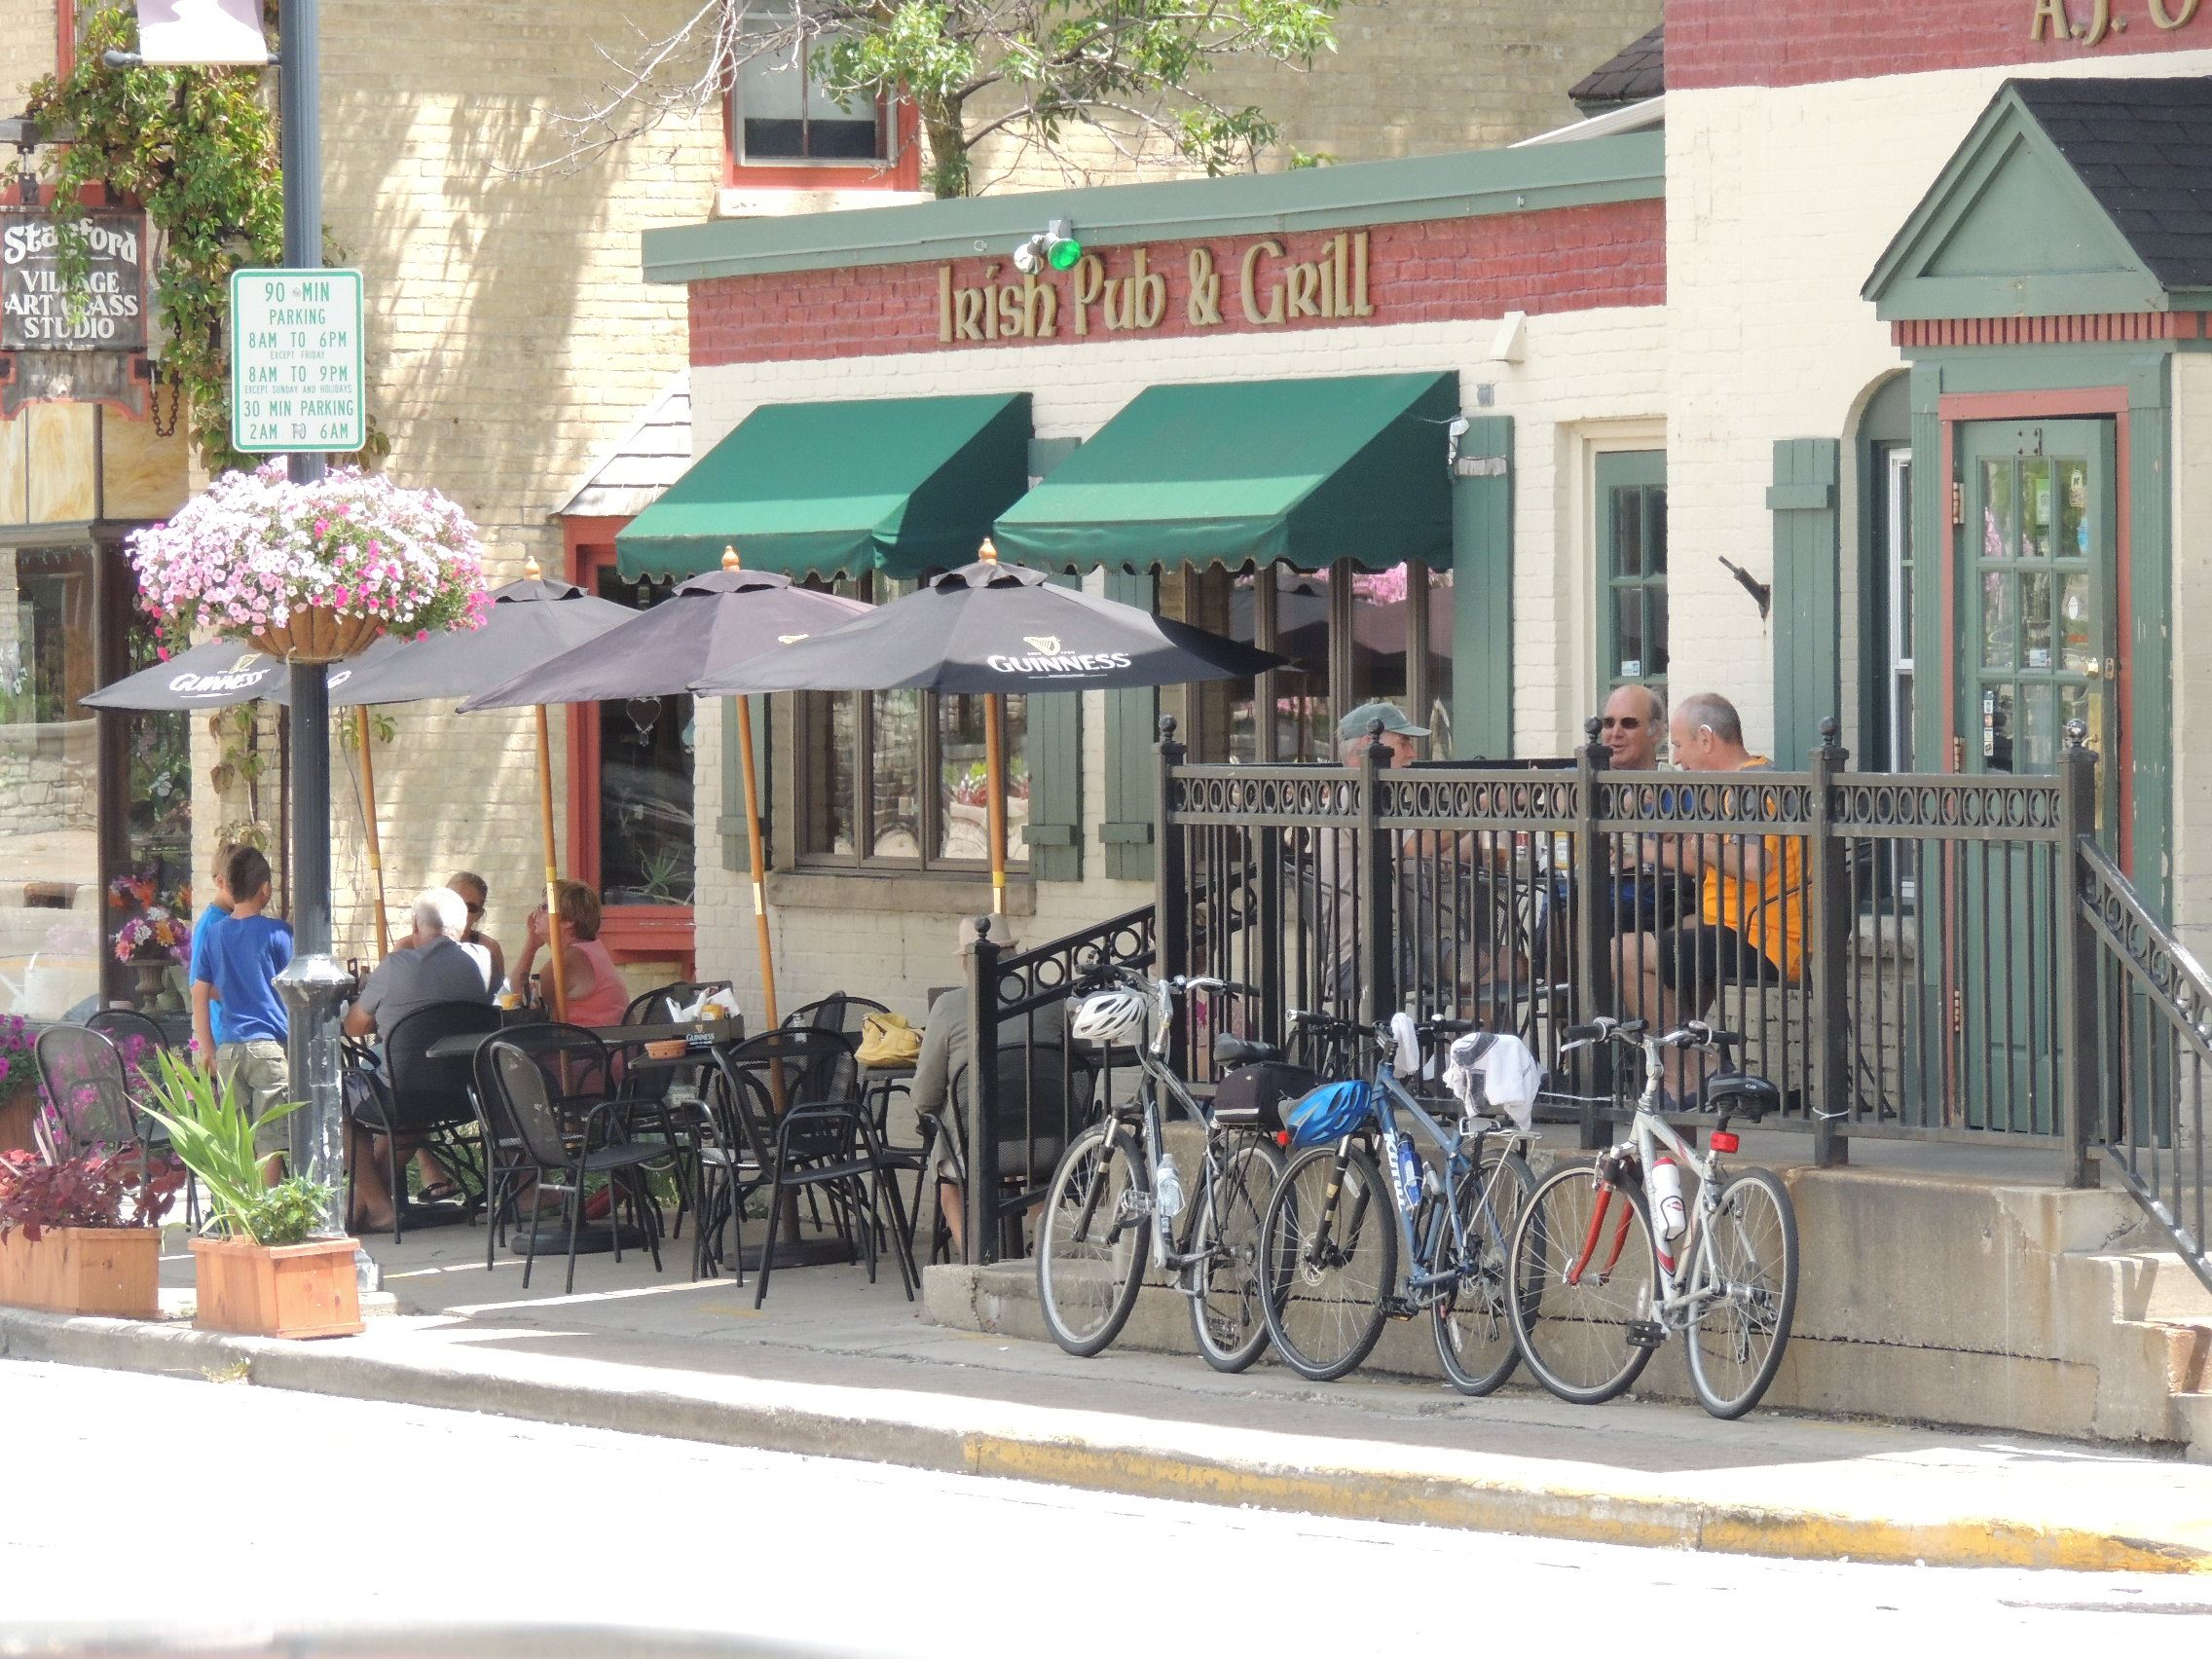 Bikes outside downtown cafe